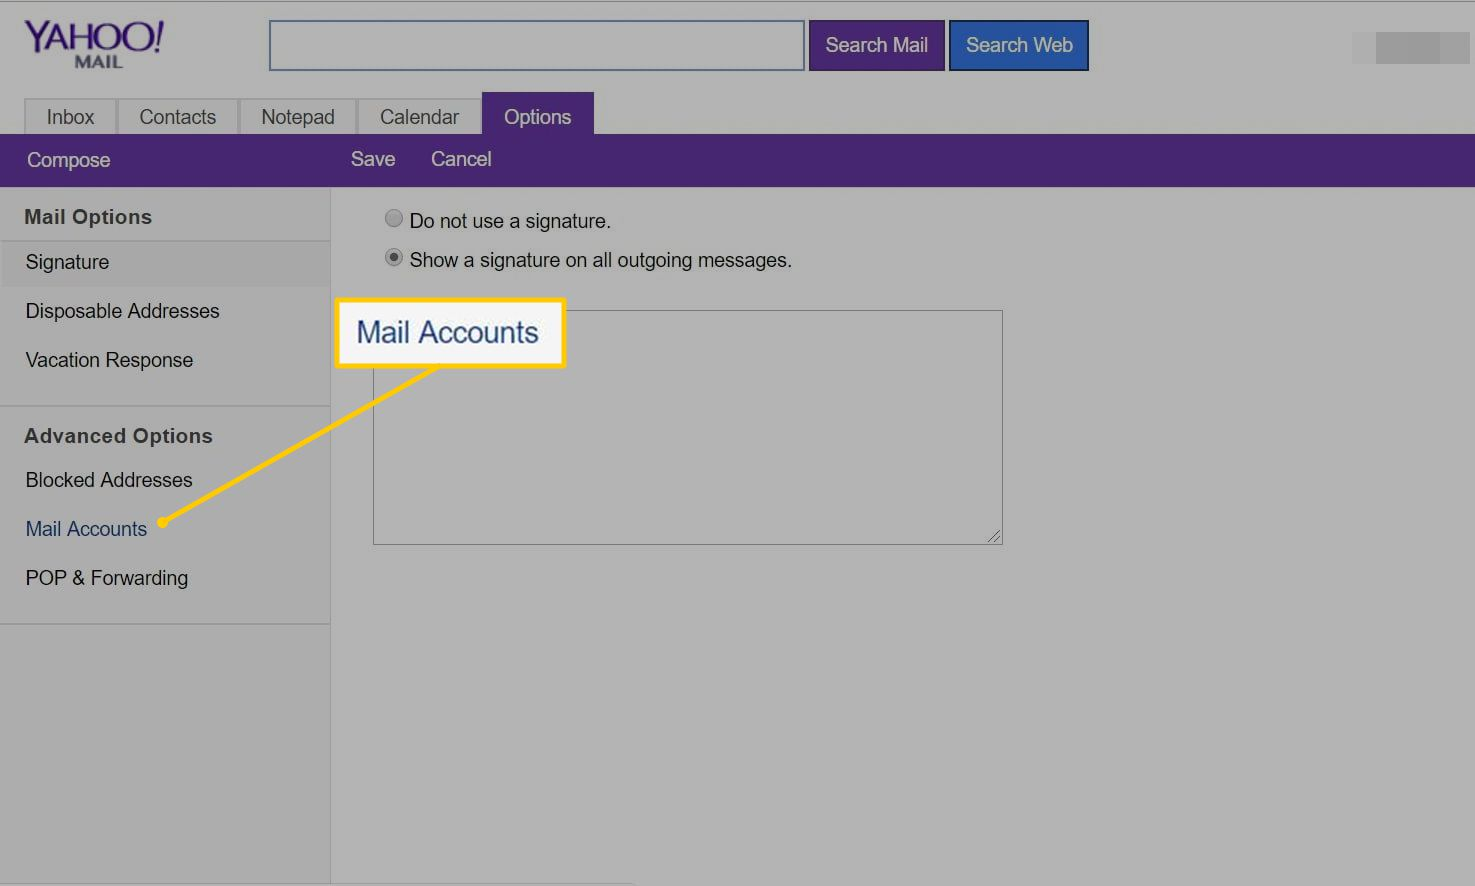 Mail Accounts link in Yahoo Mail on the web